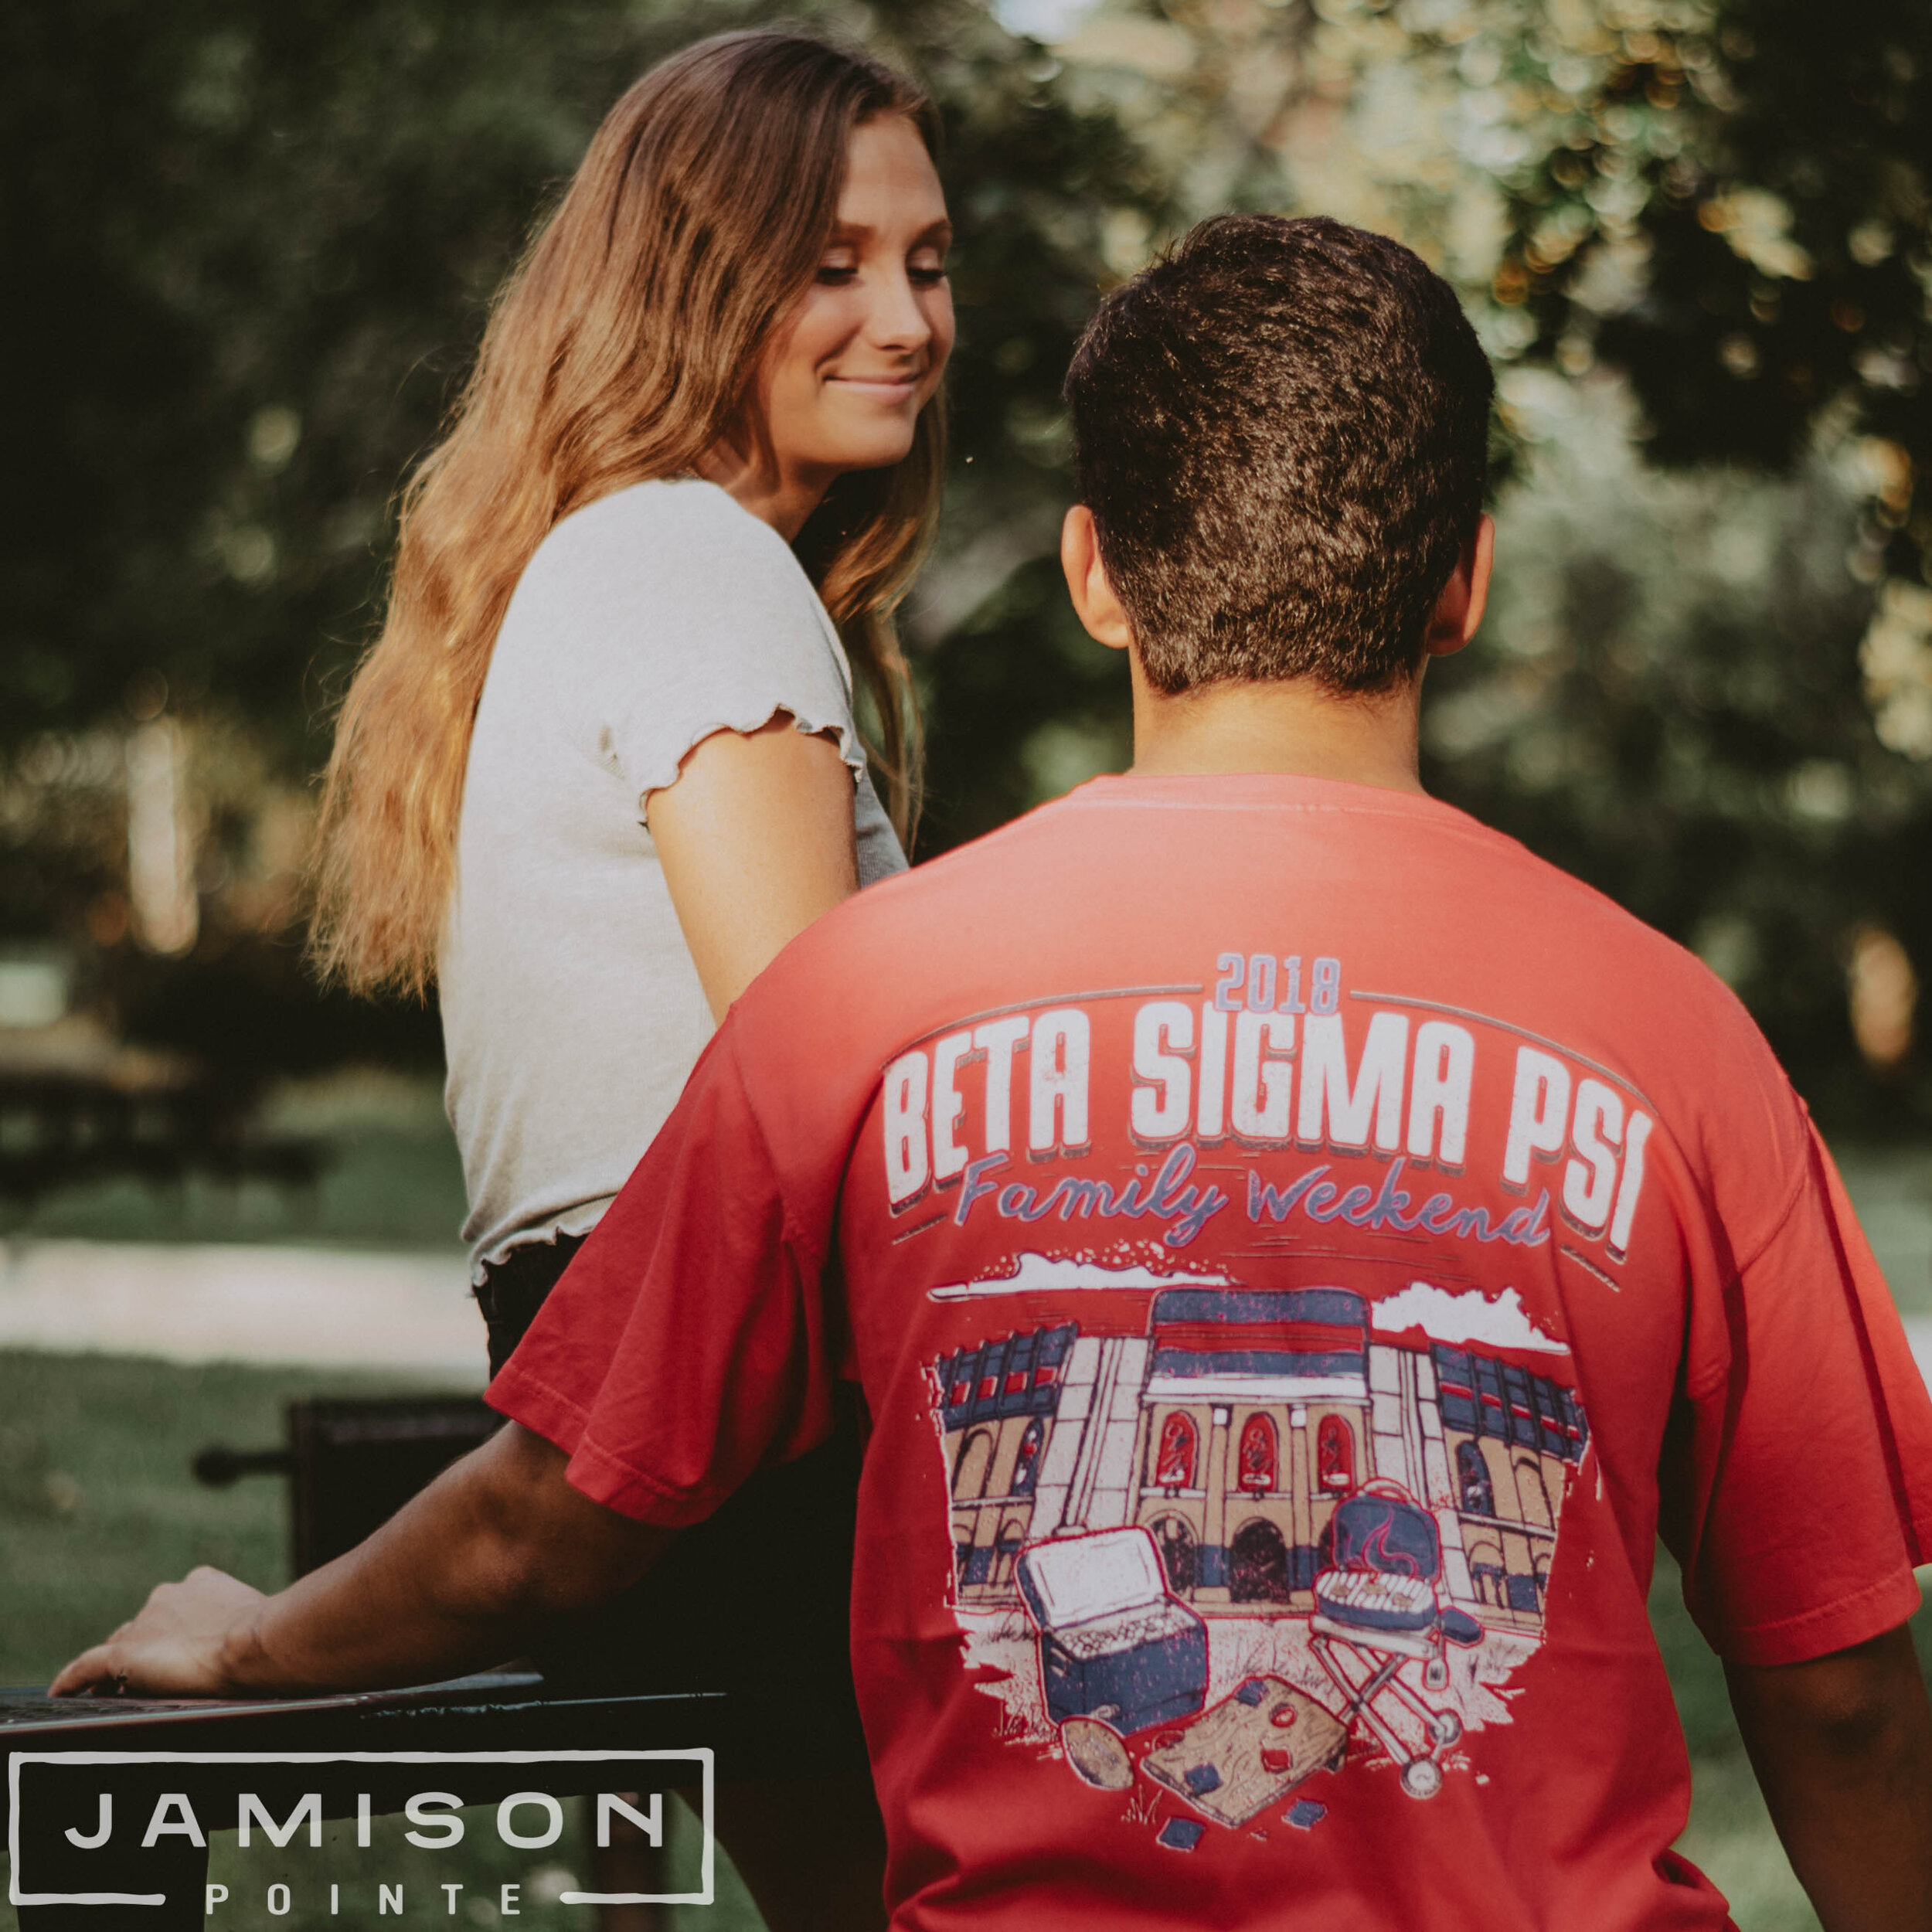 Beta Sigma Psi Parents Weekend Tee